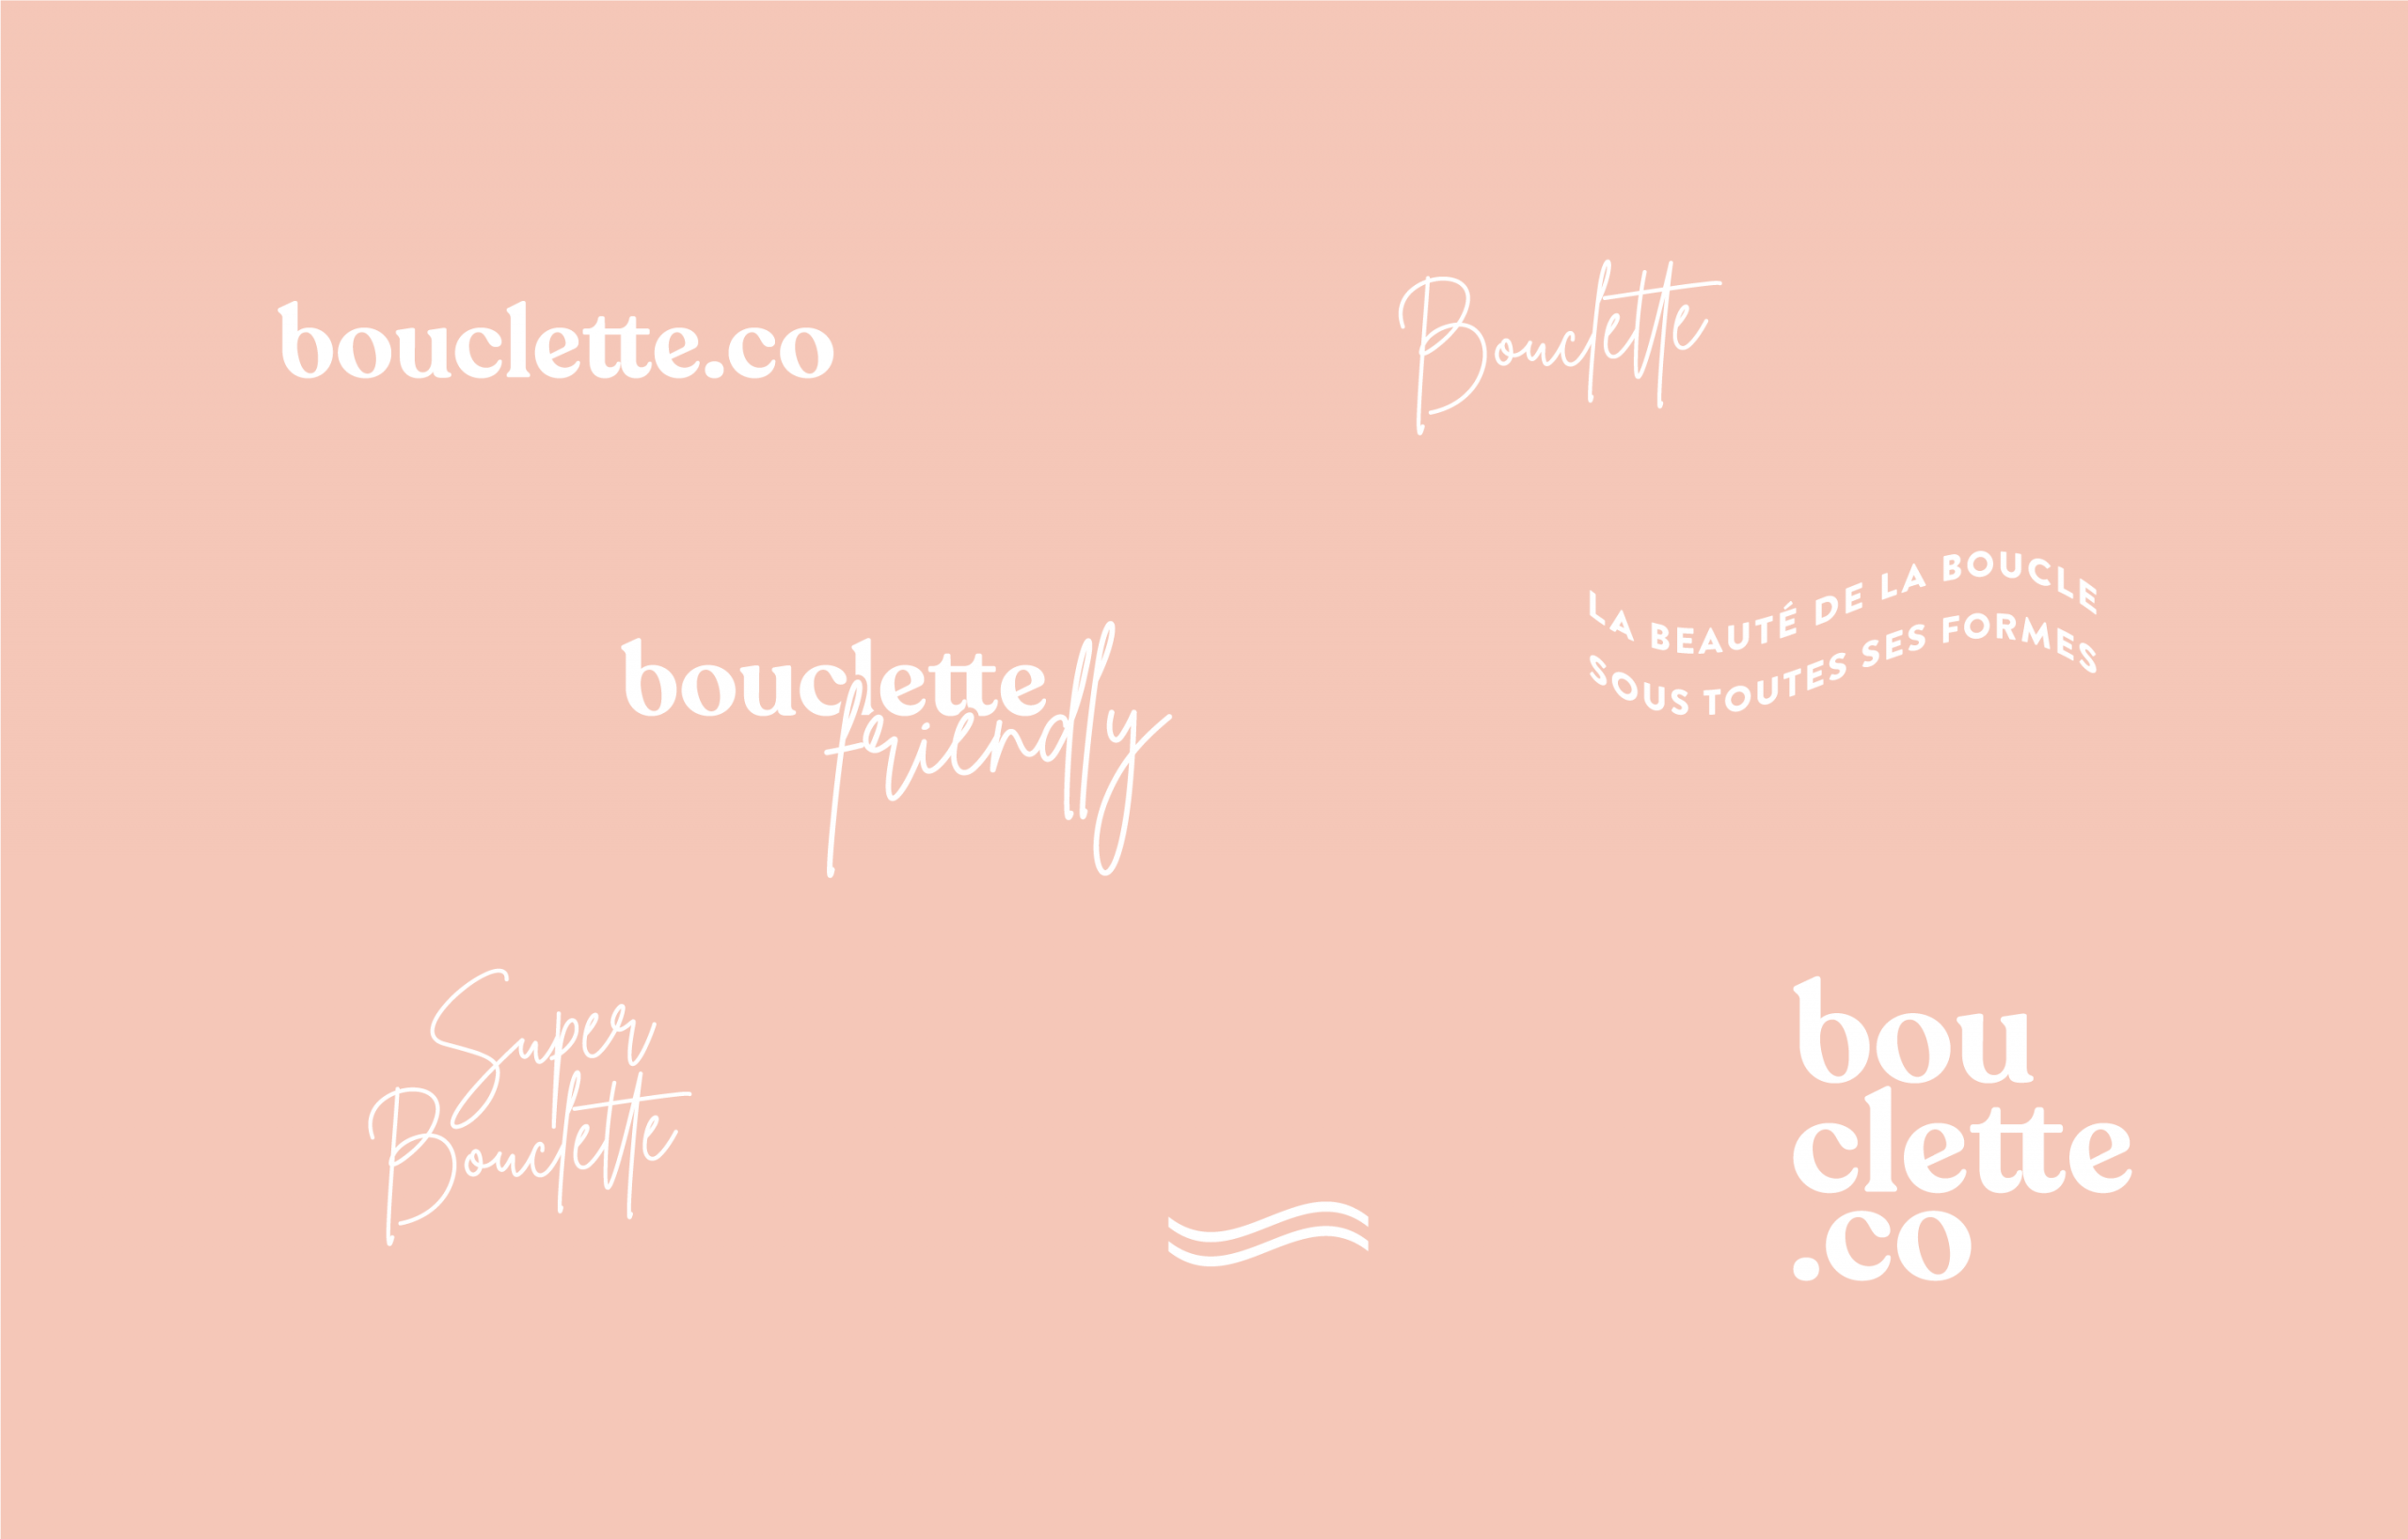 Logos and submarks for Bouclette, haircare brand design by Éternel Design Studio